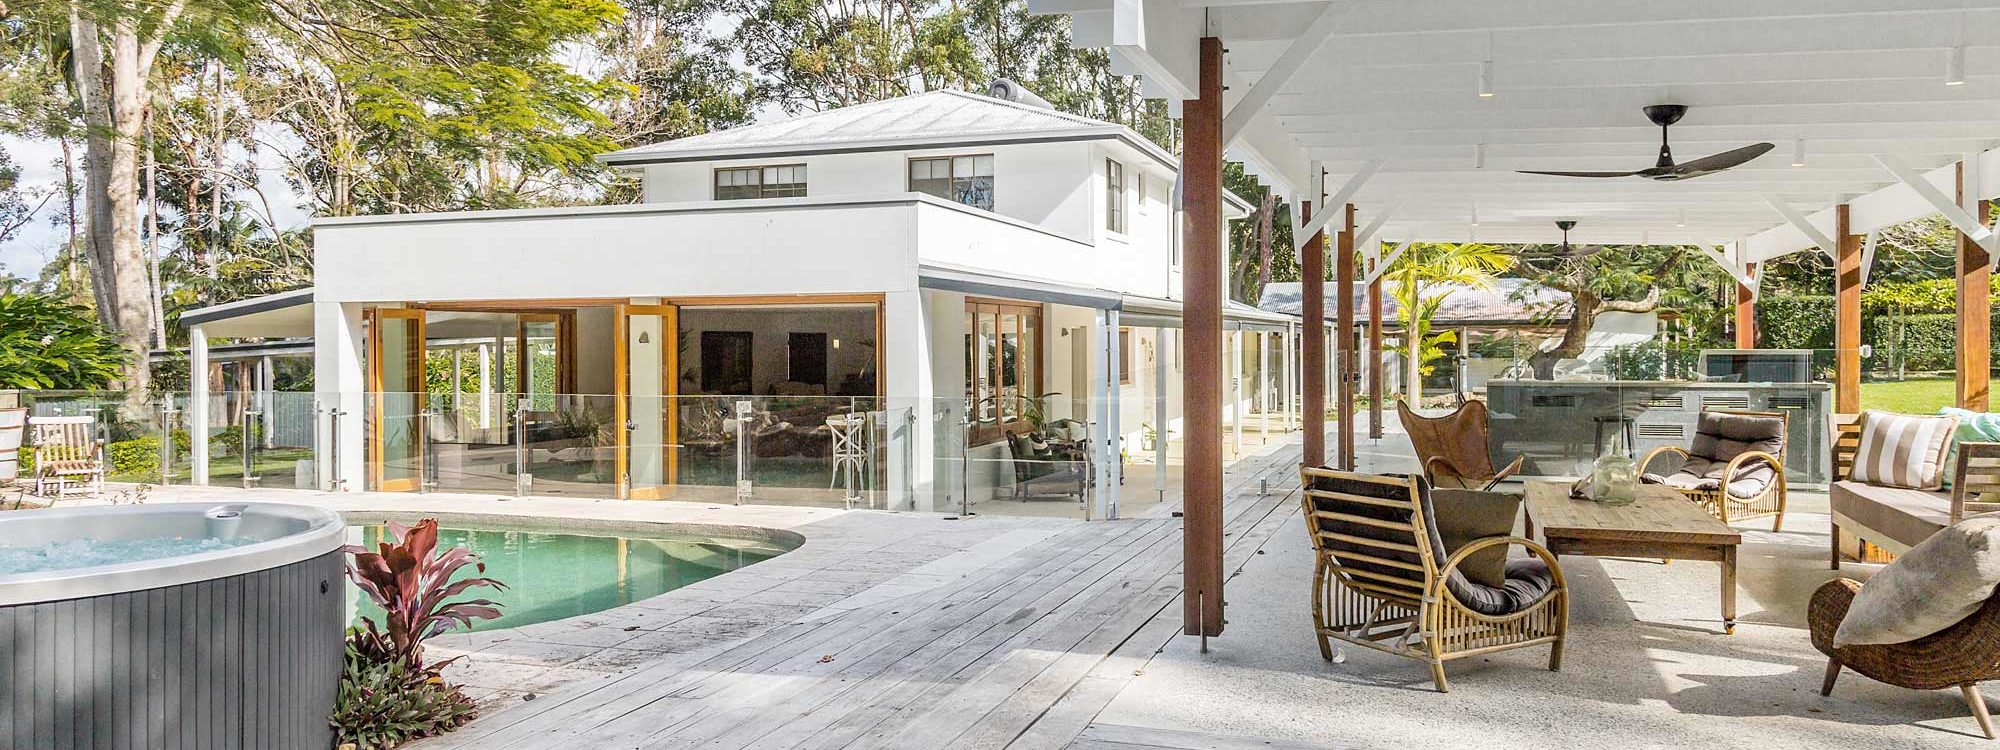 Augustine - Byron Bay - Outdoor Living Area a